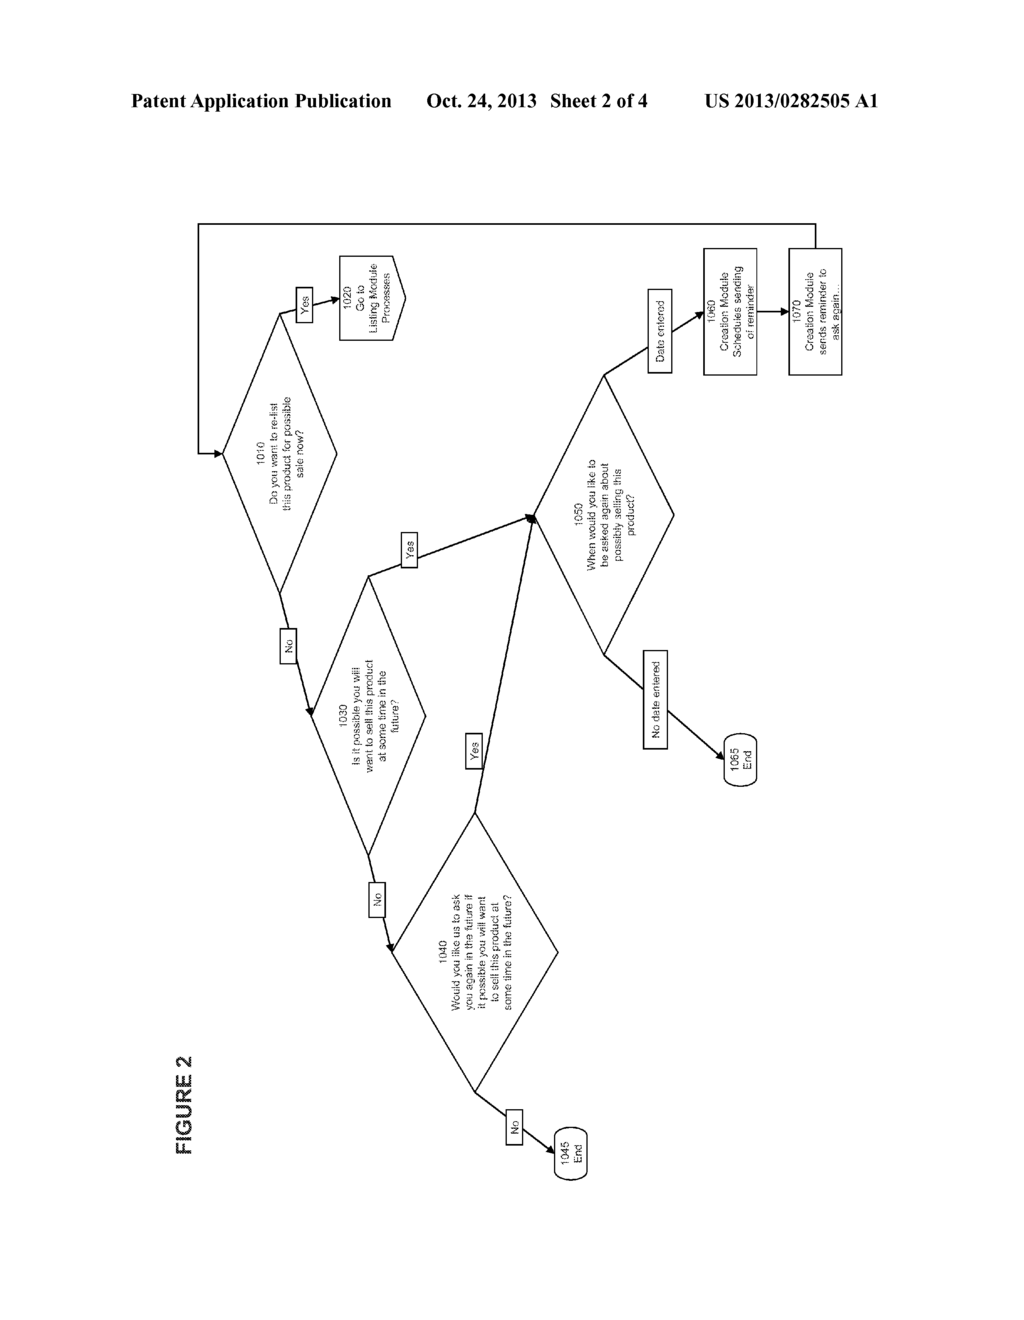 wan diagram wiring diagram database Alarm System Installations system and method for generating exponential expansion of merce wide area network diagram system and method